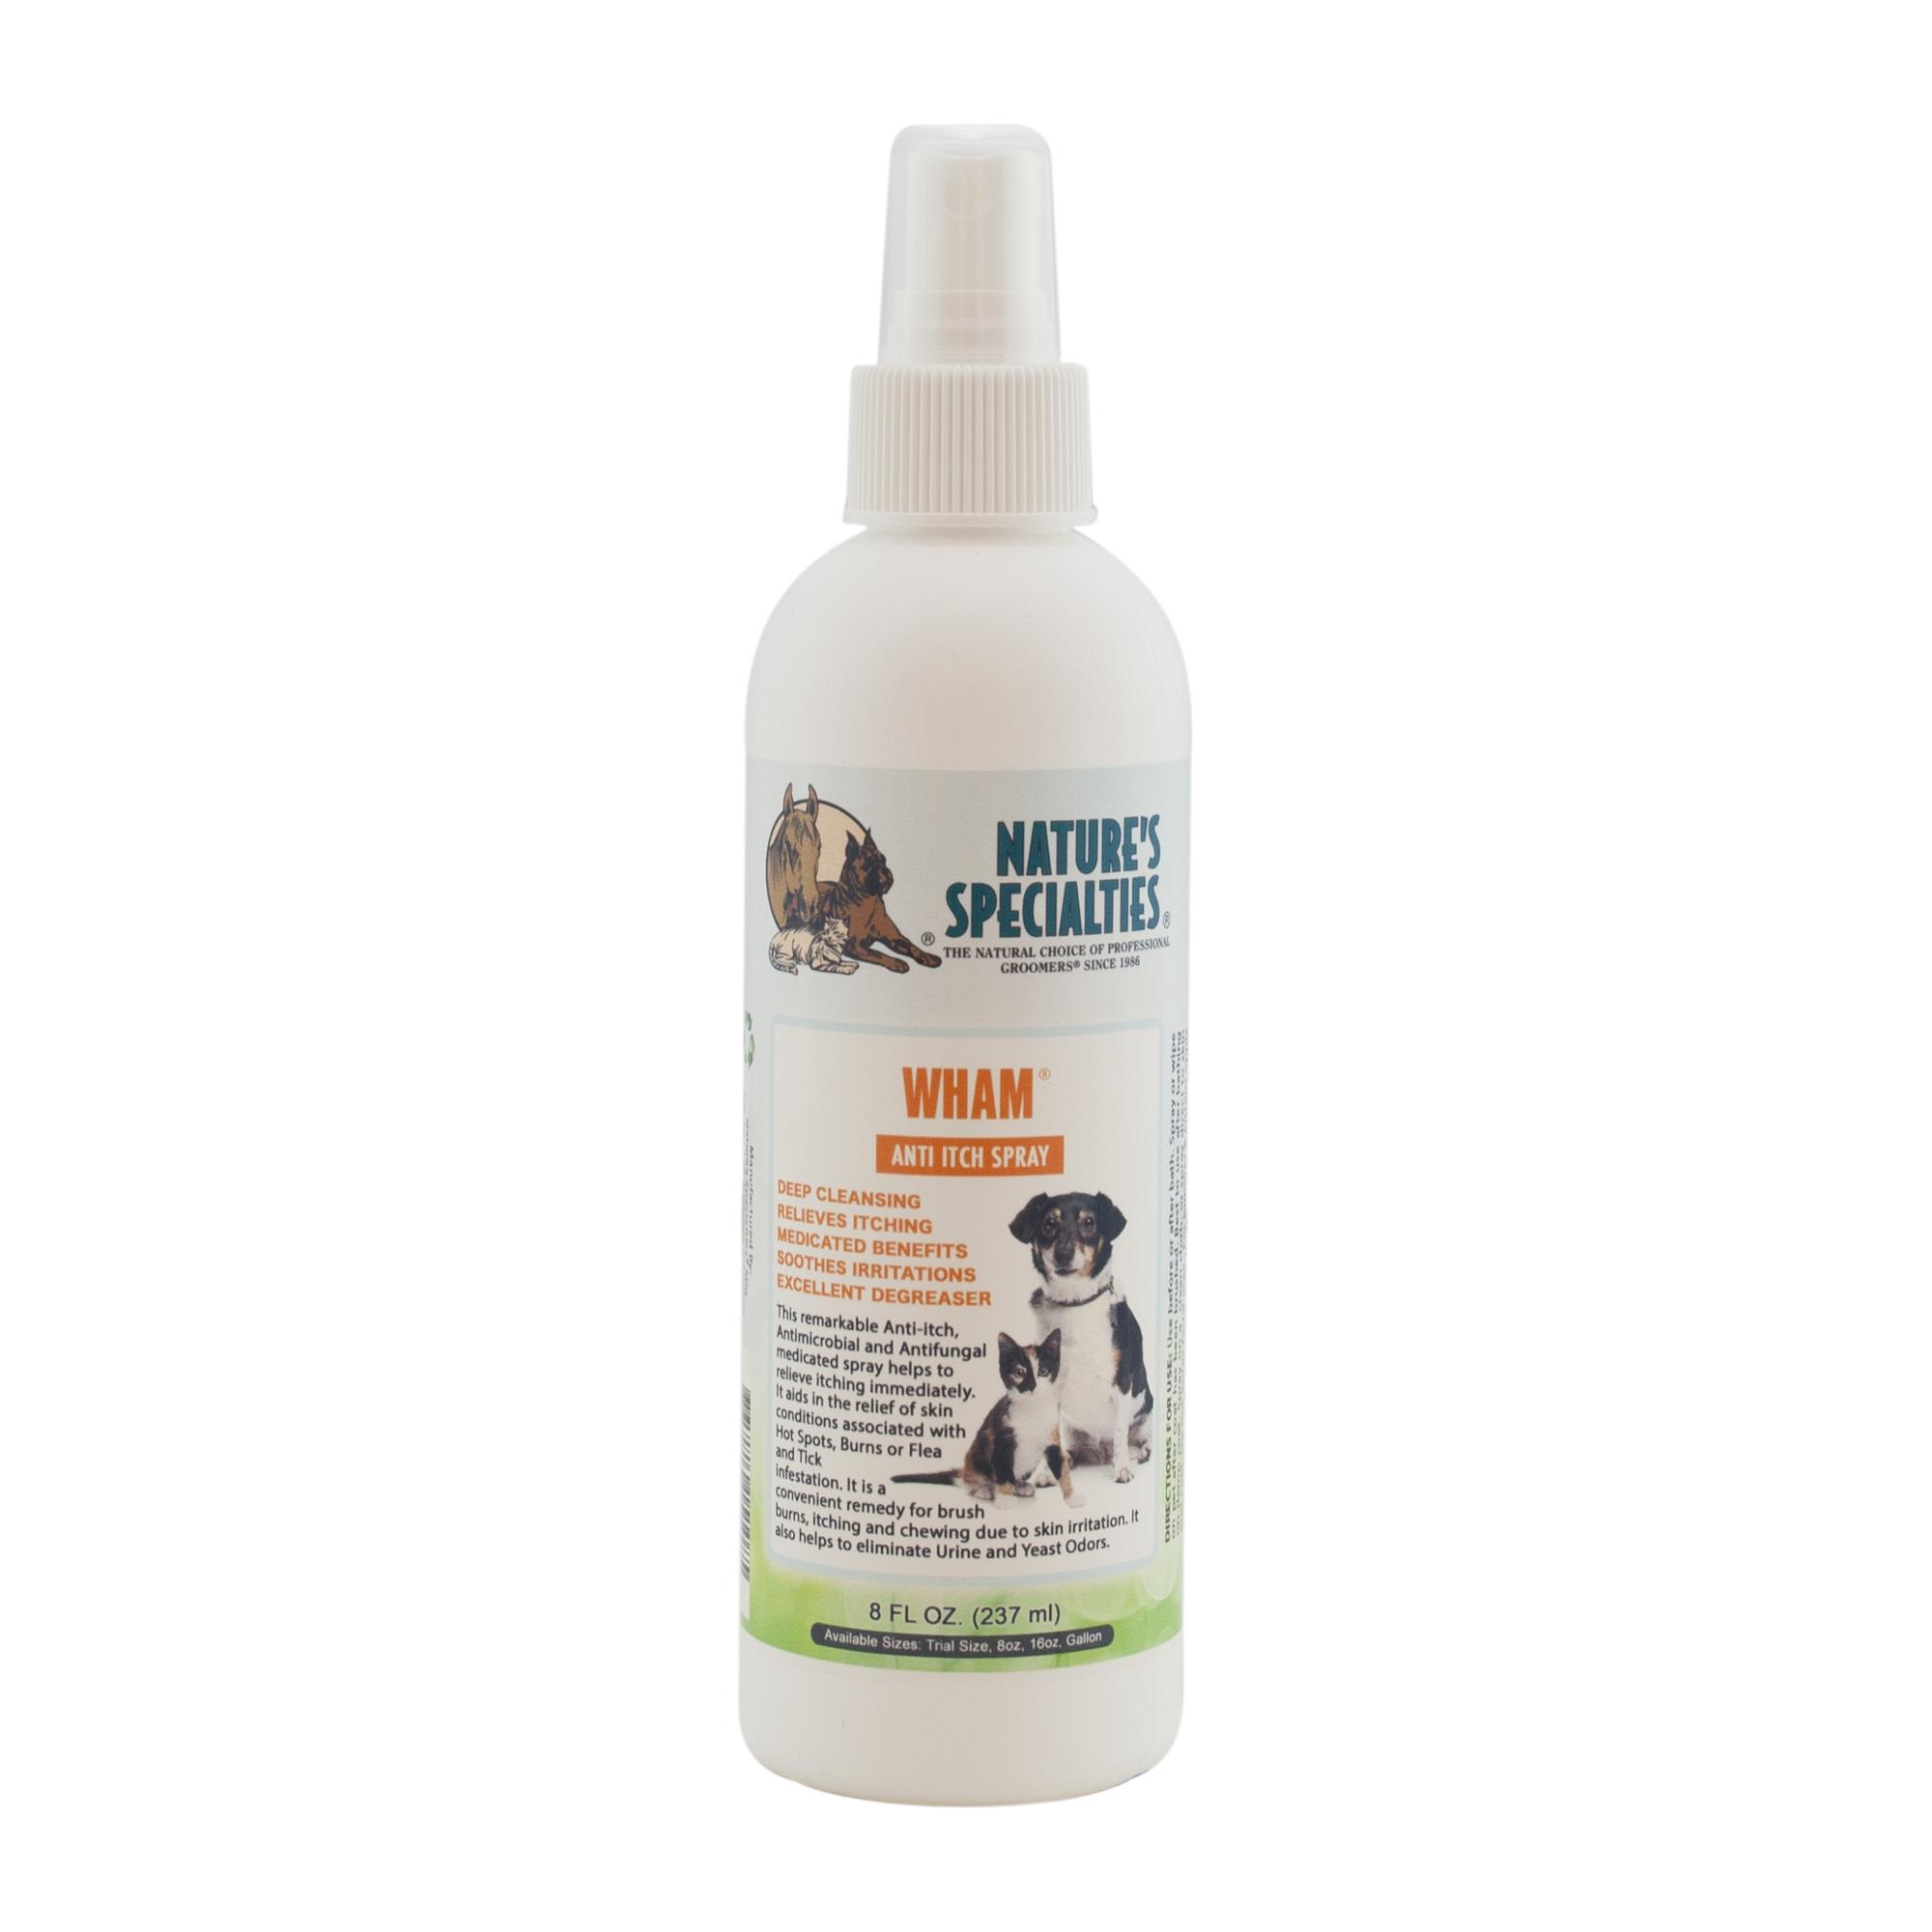 Nature's Specialties WHAM Anti-Itch Spray for Dogs & Cats, 8-oz bottle